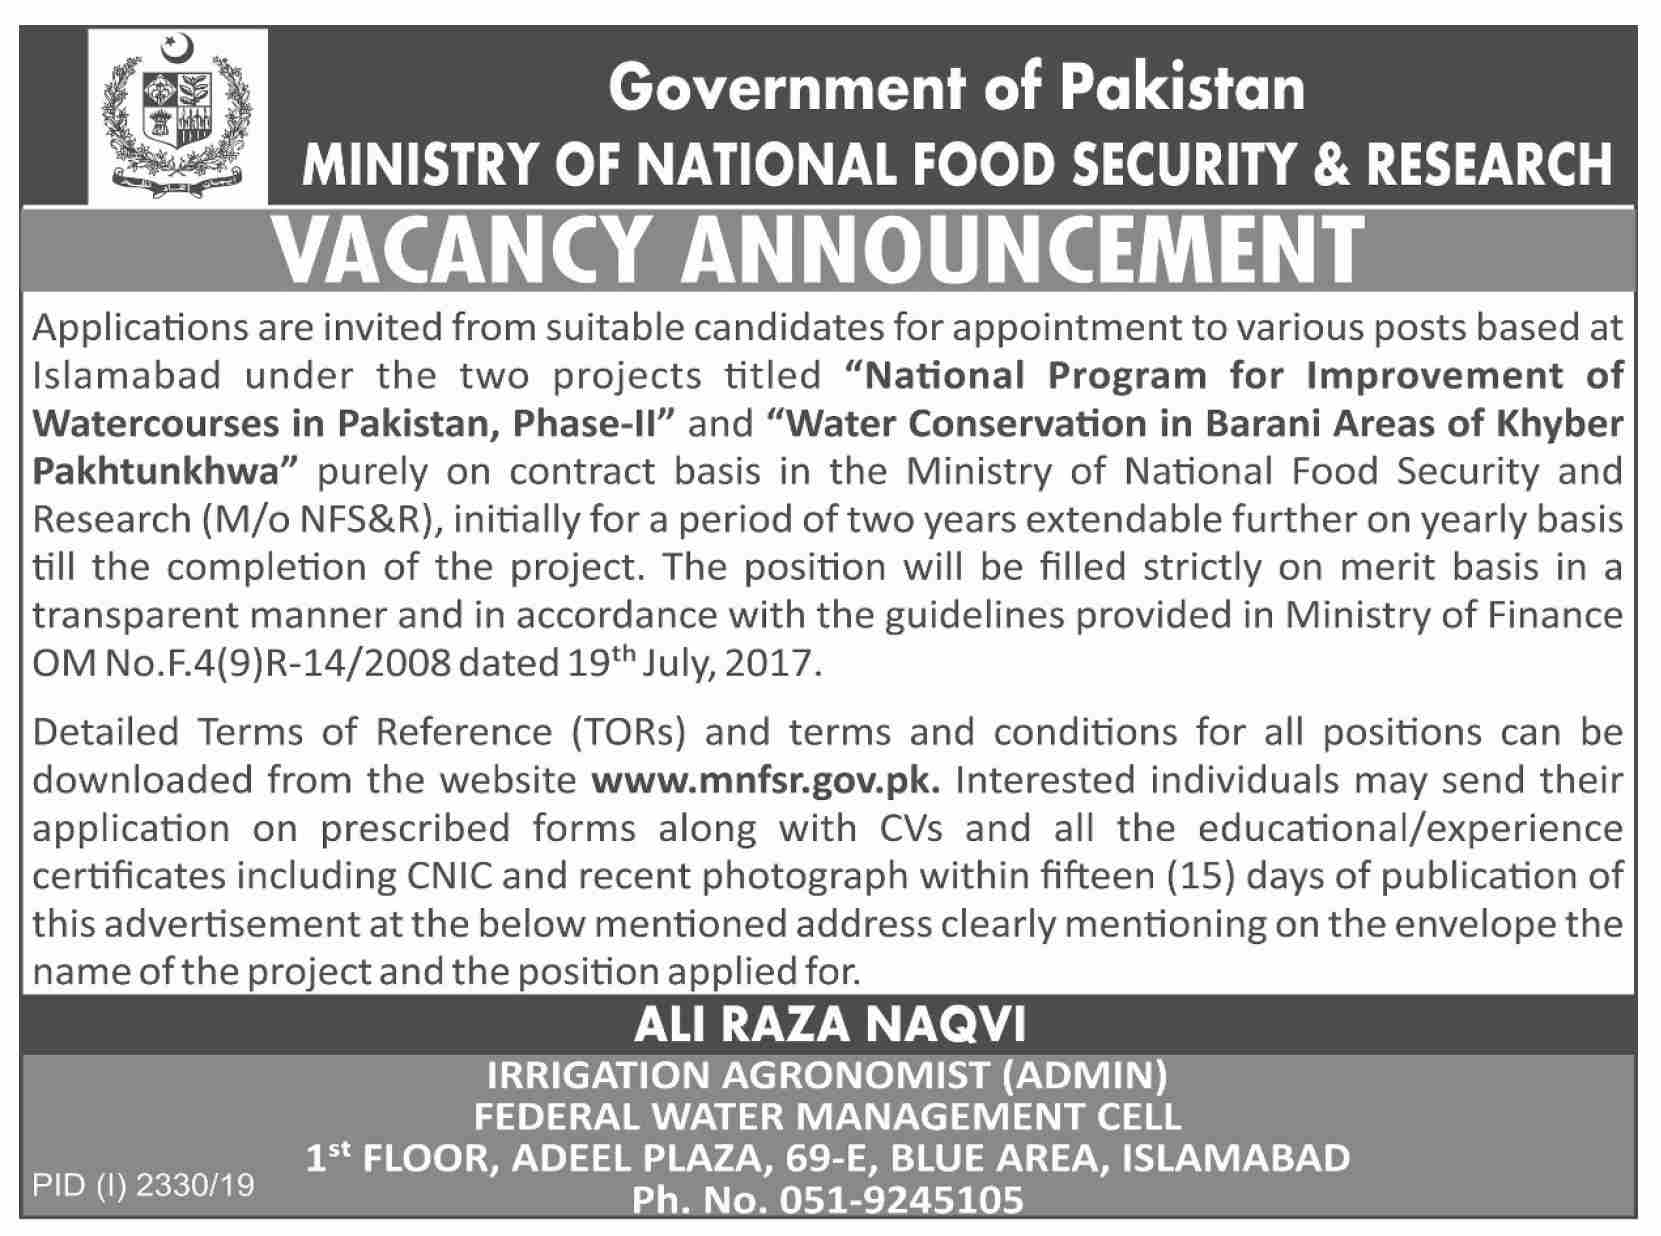 Ministry of National Food Security & Research Offering Jobs In Islamabad